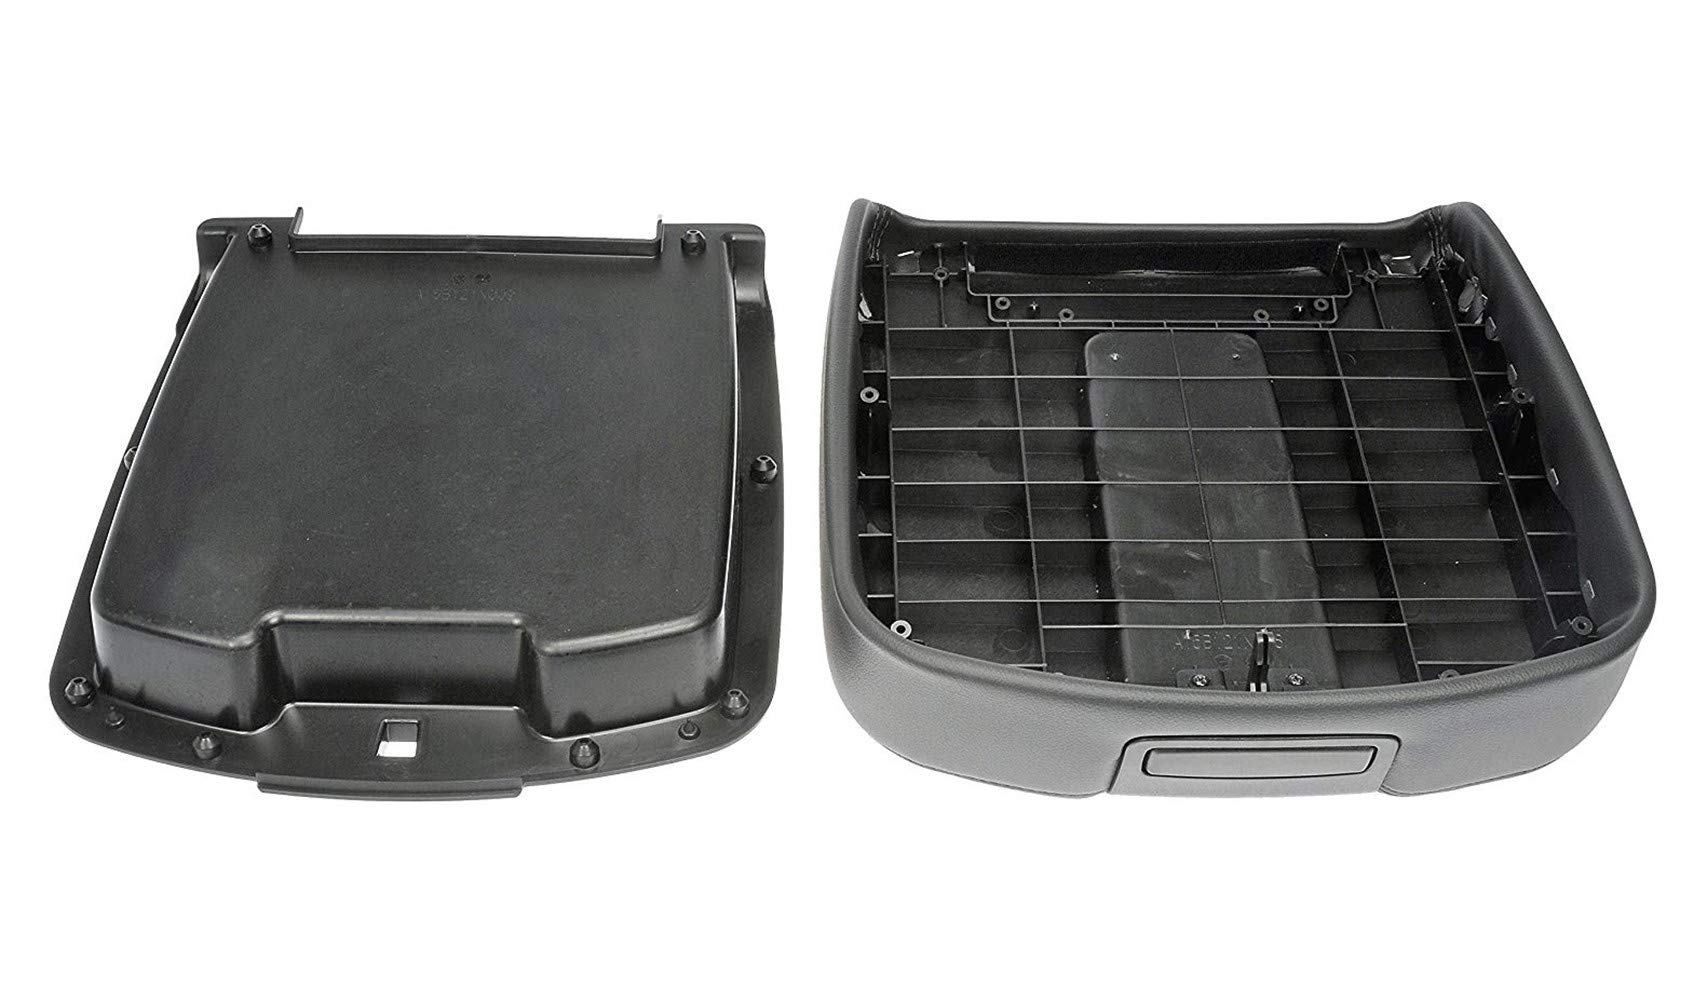 JAUTO Center Console Lid Kit for Select GM Vehicles - Replaces 15217111 15941534 - Black by JAUTO (Image #3)